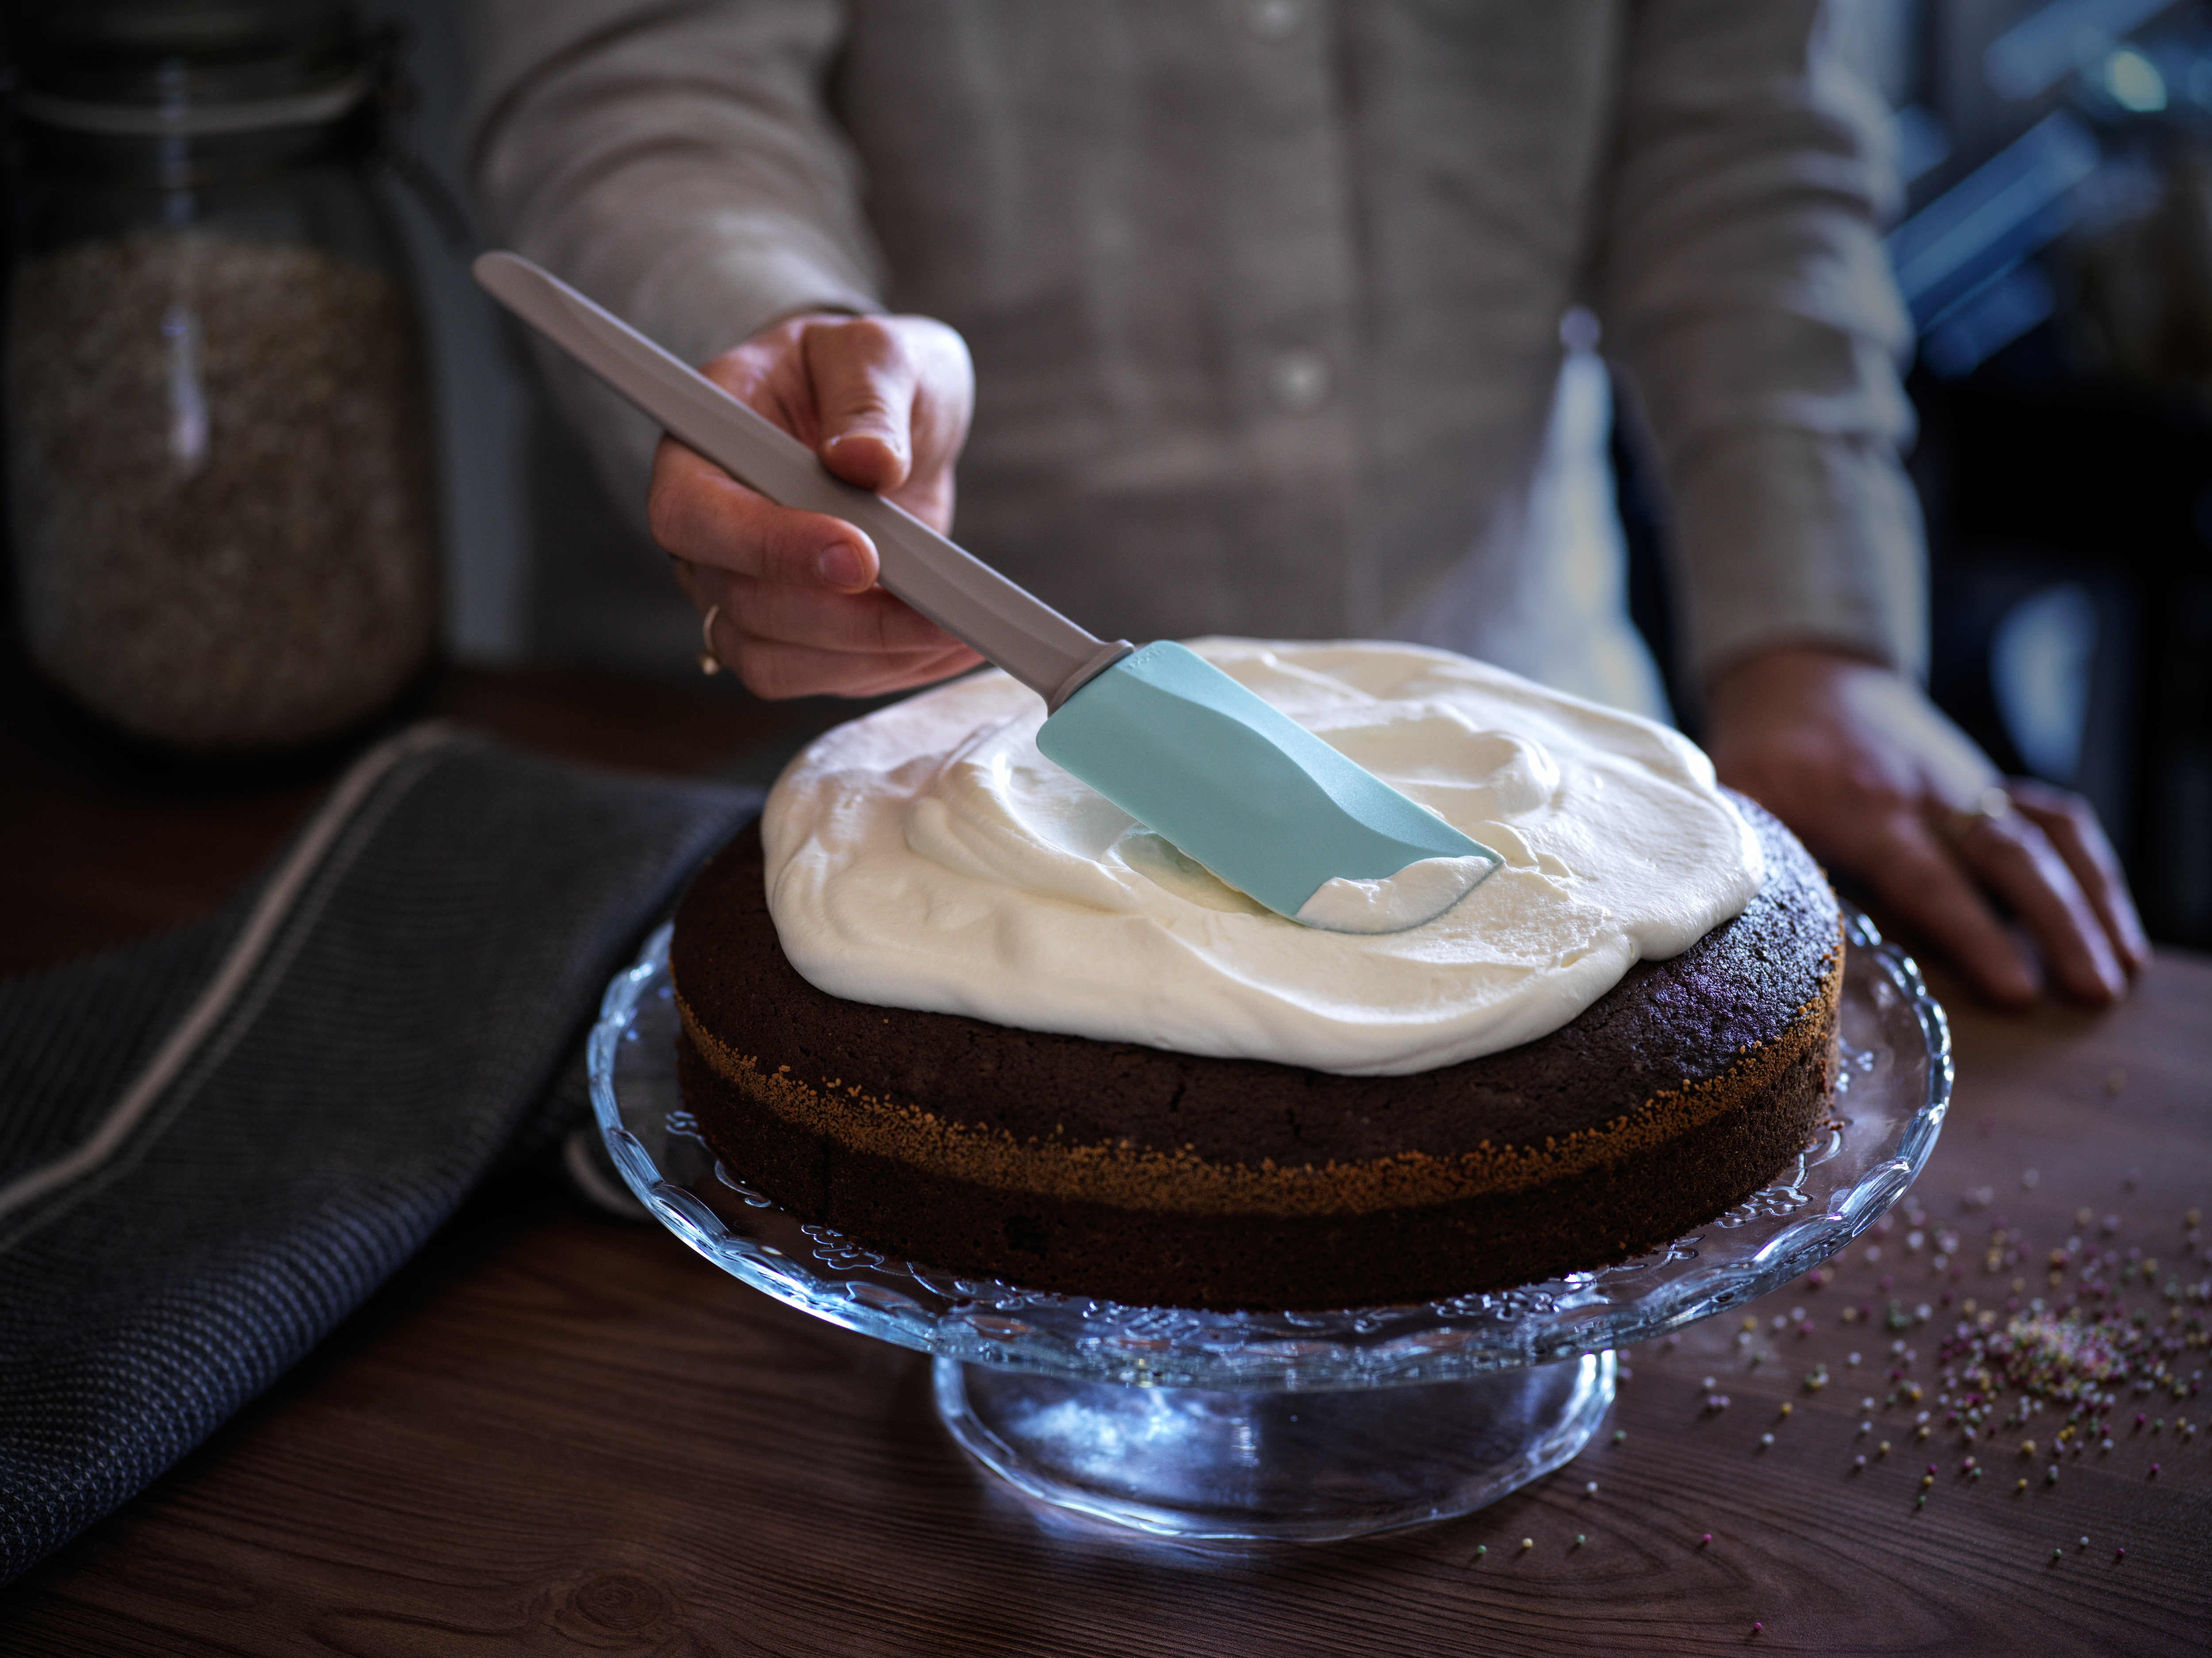 Baker uses rubber spatula to frost a cake on glass cake stand